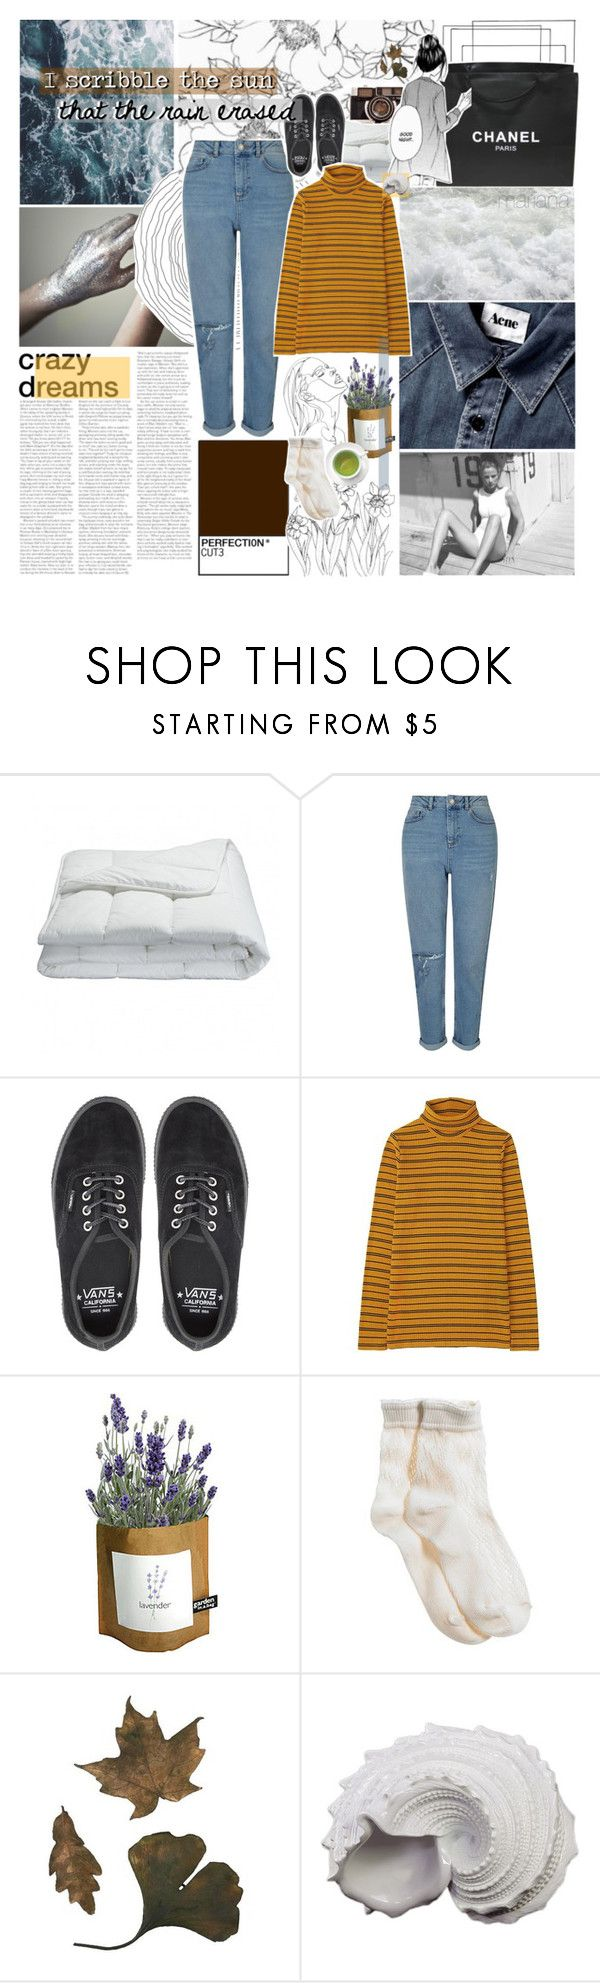 """""""//TMNBG ROUND ONE//"""" by marysilvs1 ❤ liked on Polyvore featuring Chanel, Frette, Miss Selfridge, Vans, Uniqlo, Potting Shed Creations, Aerie and Urban Trends Collection"""